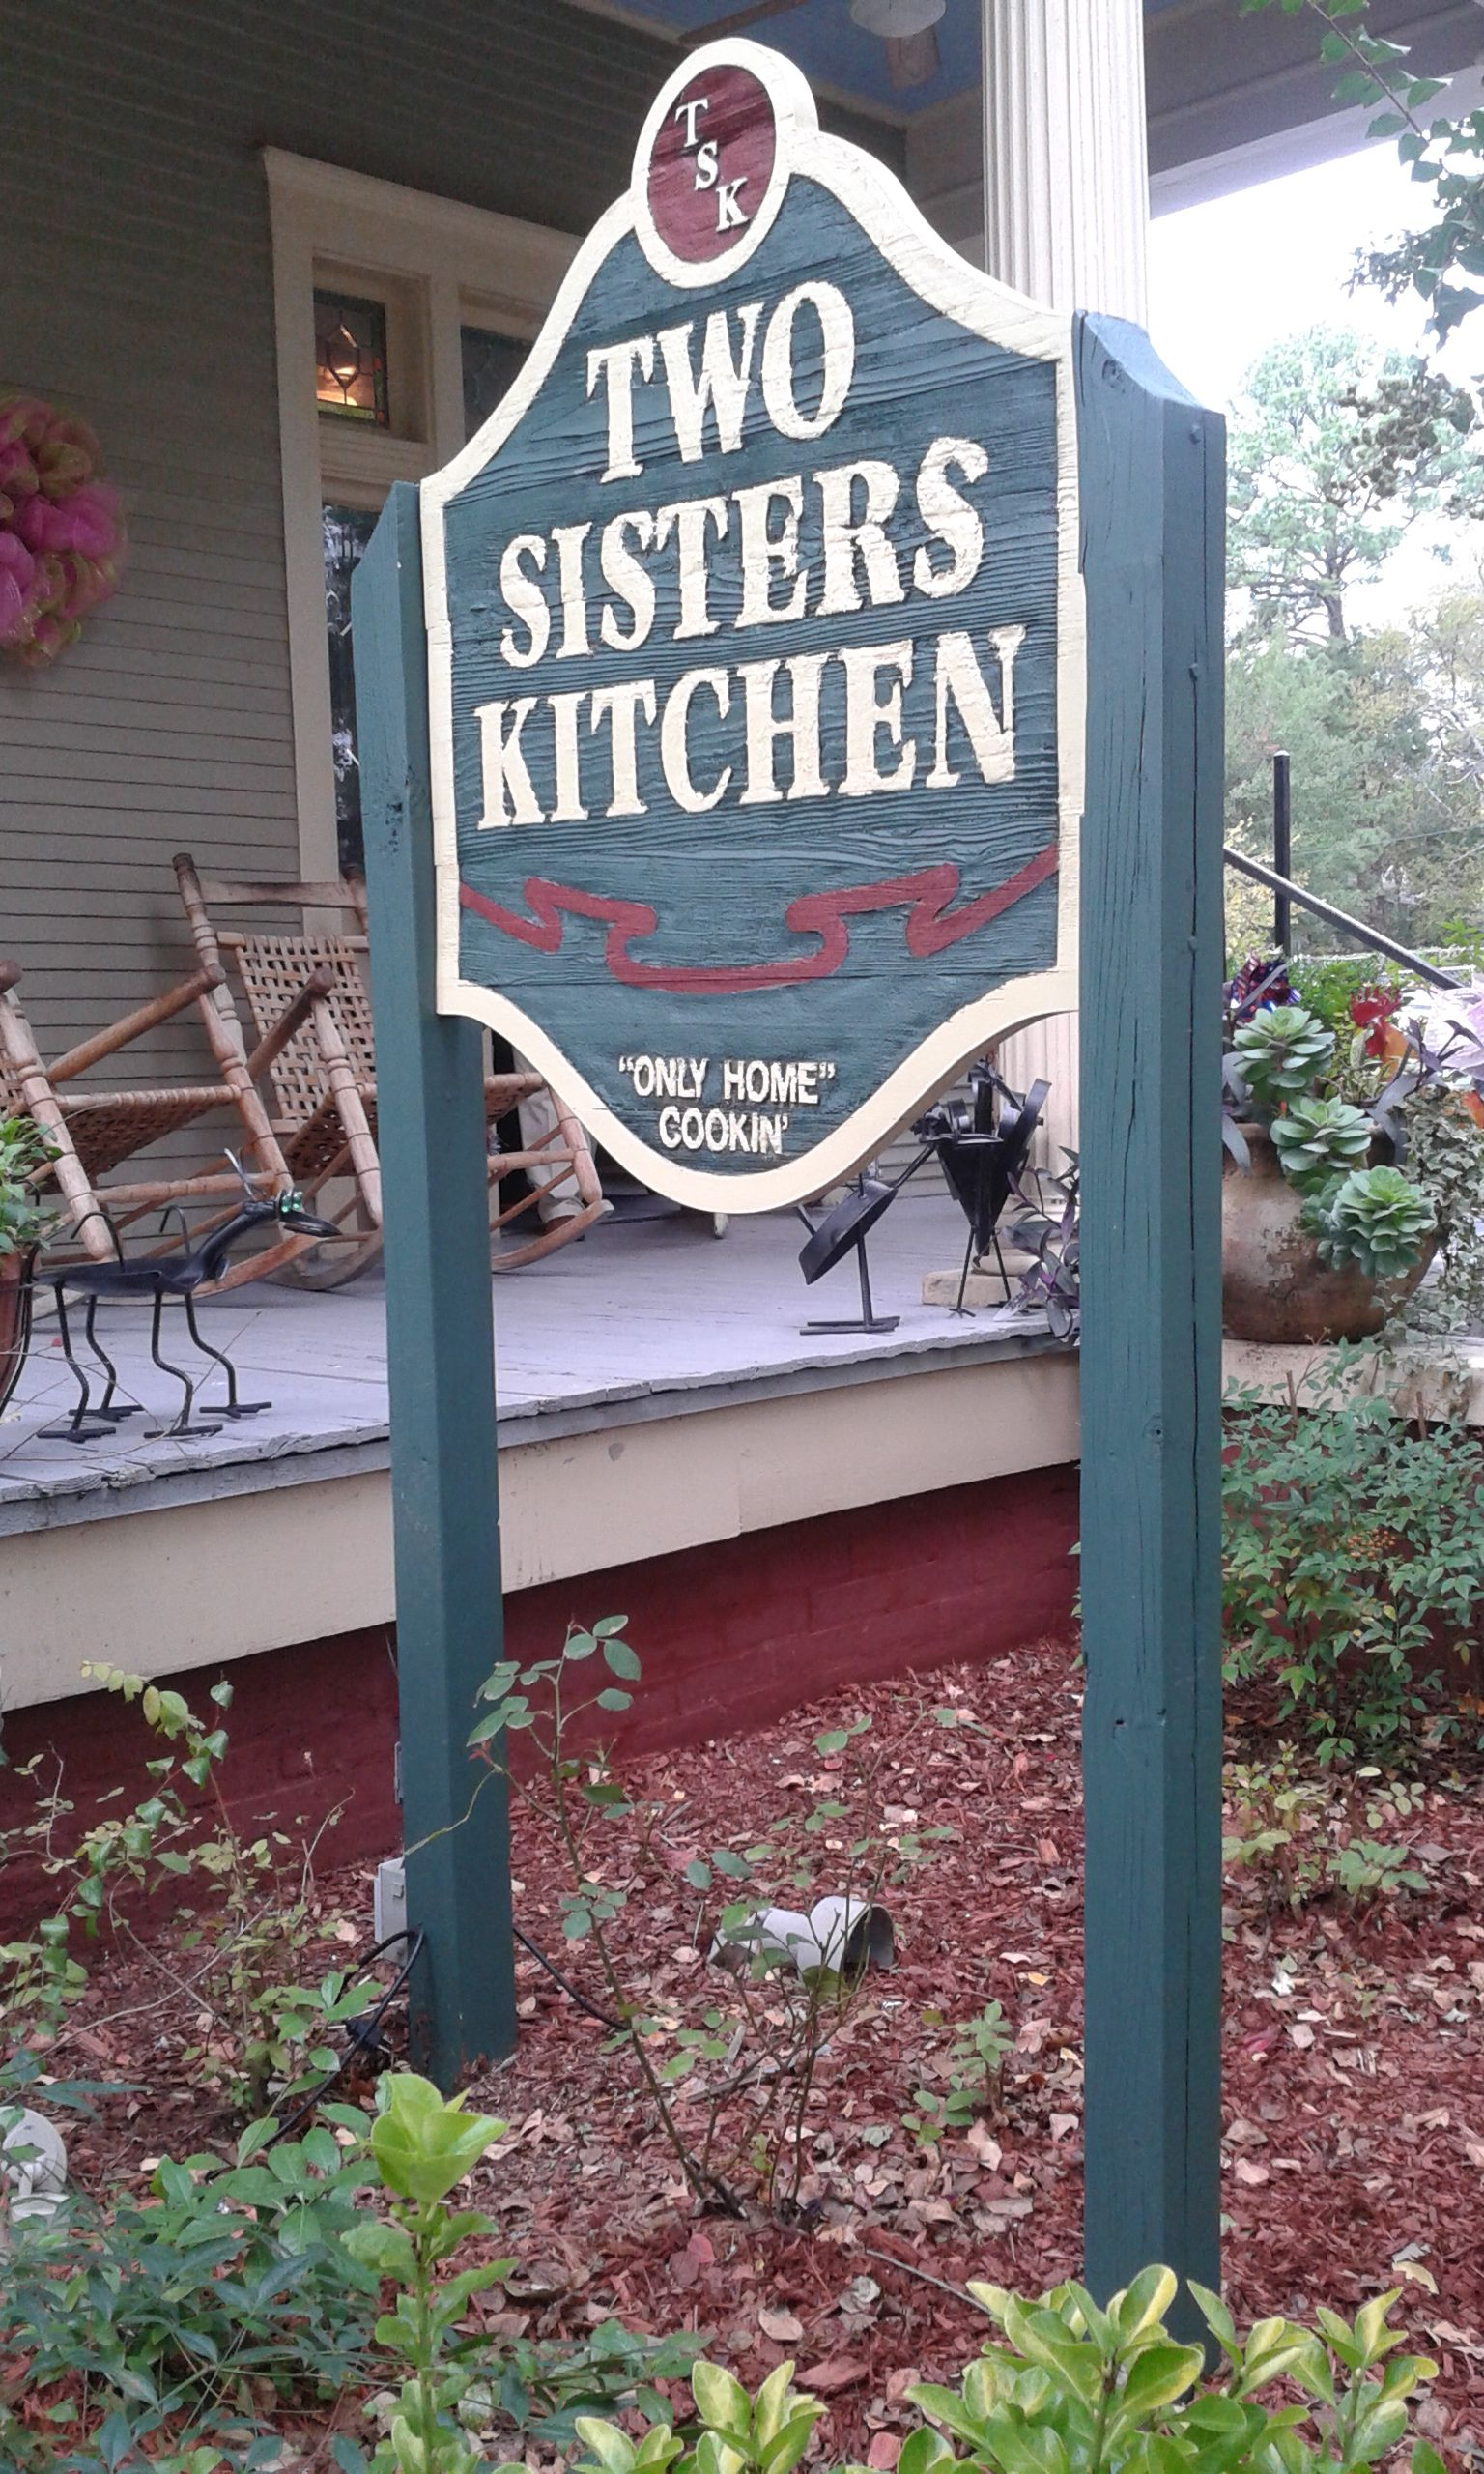 File:Two Sisters Kitchen sign.jpg - Wikimedia Commons